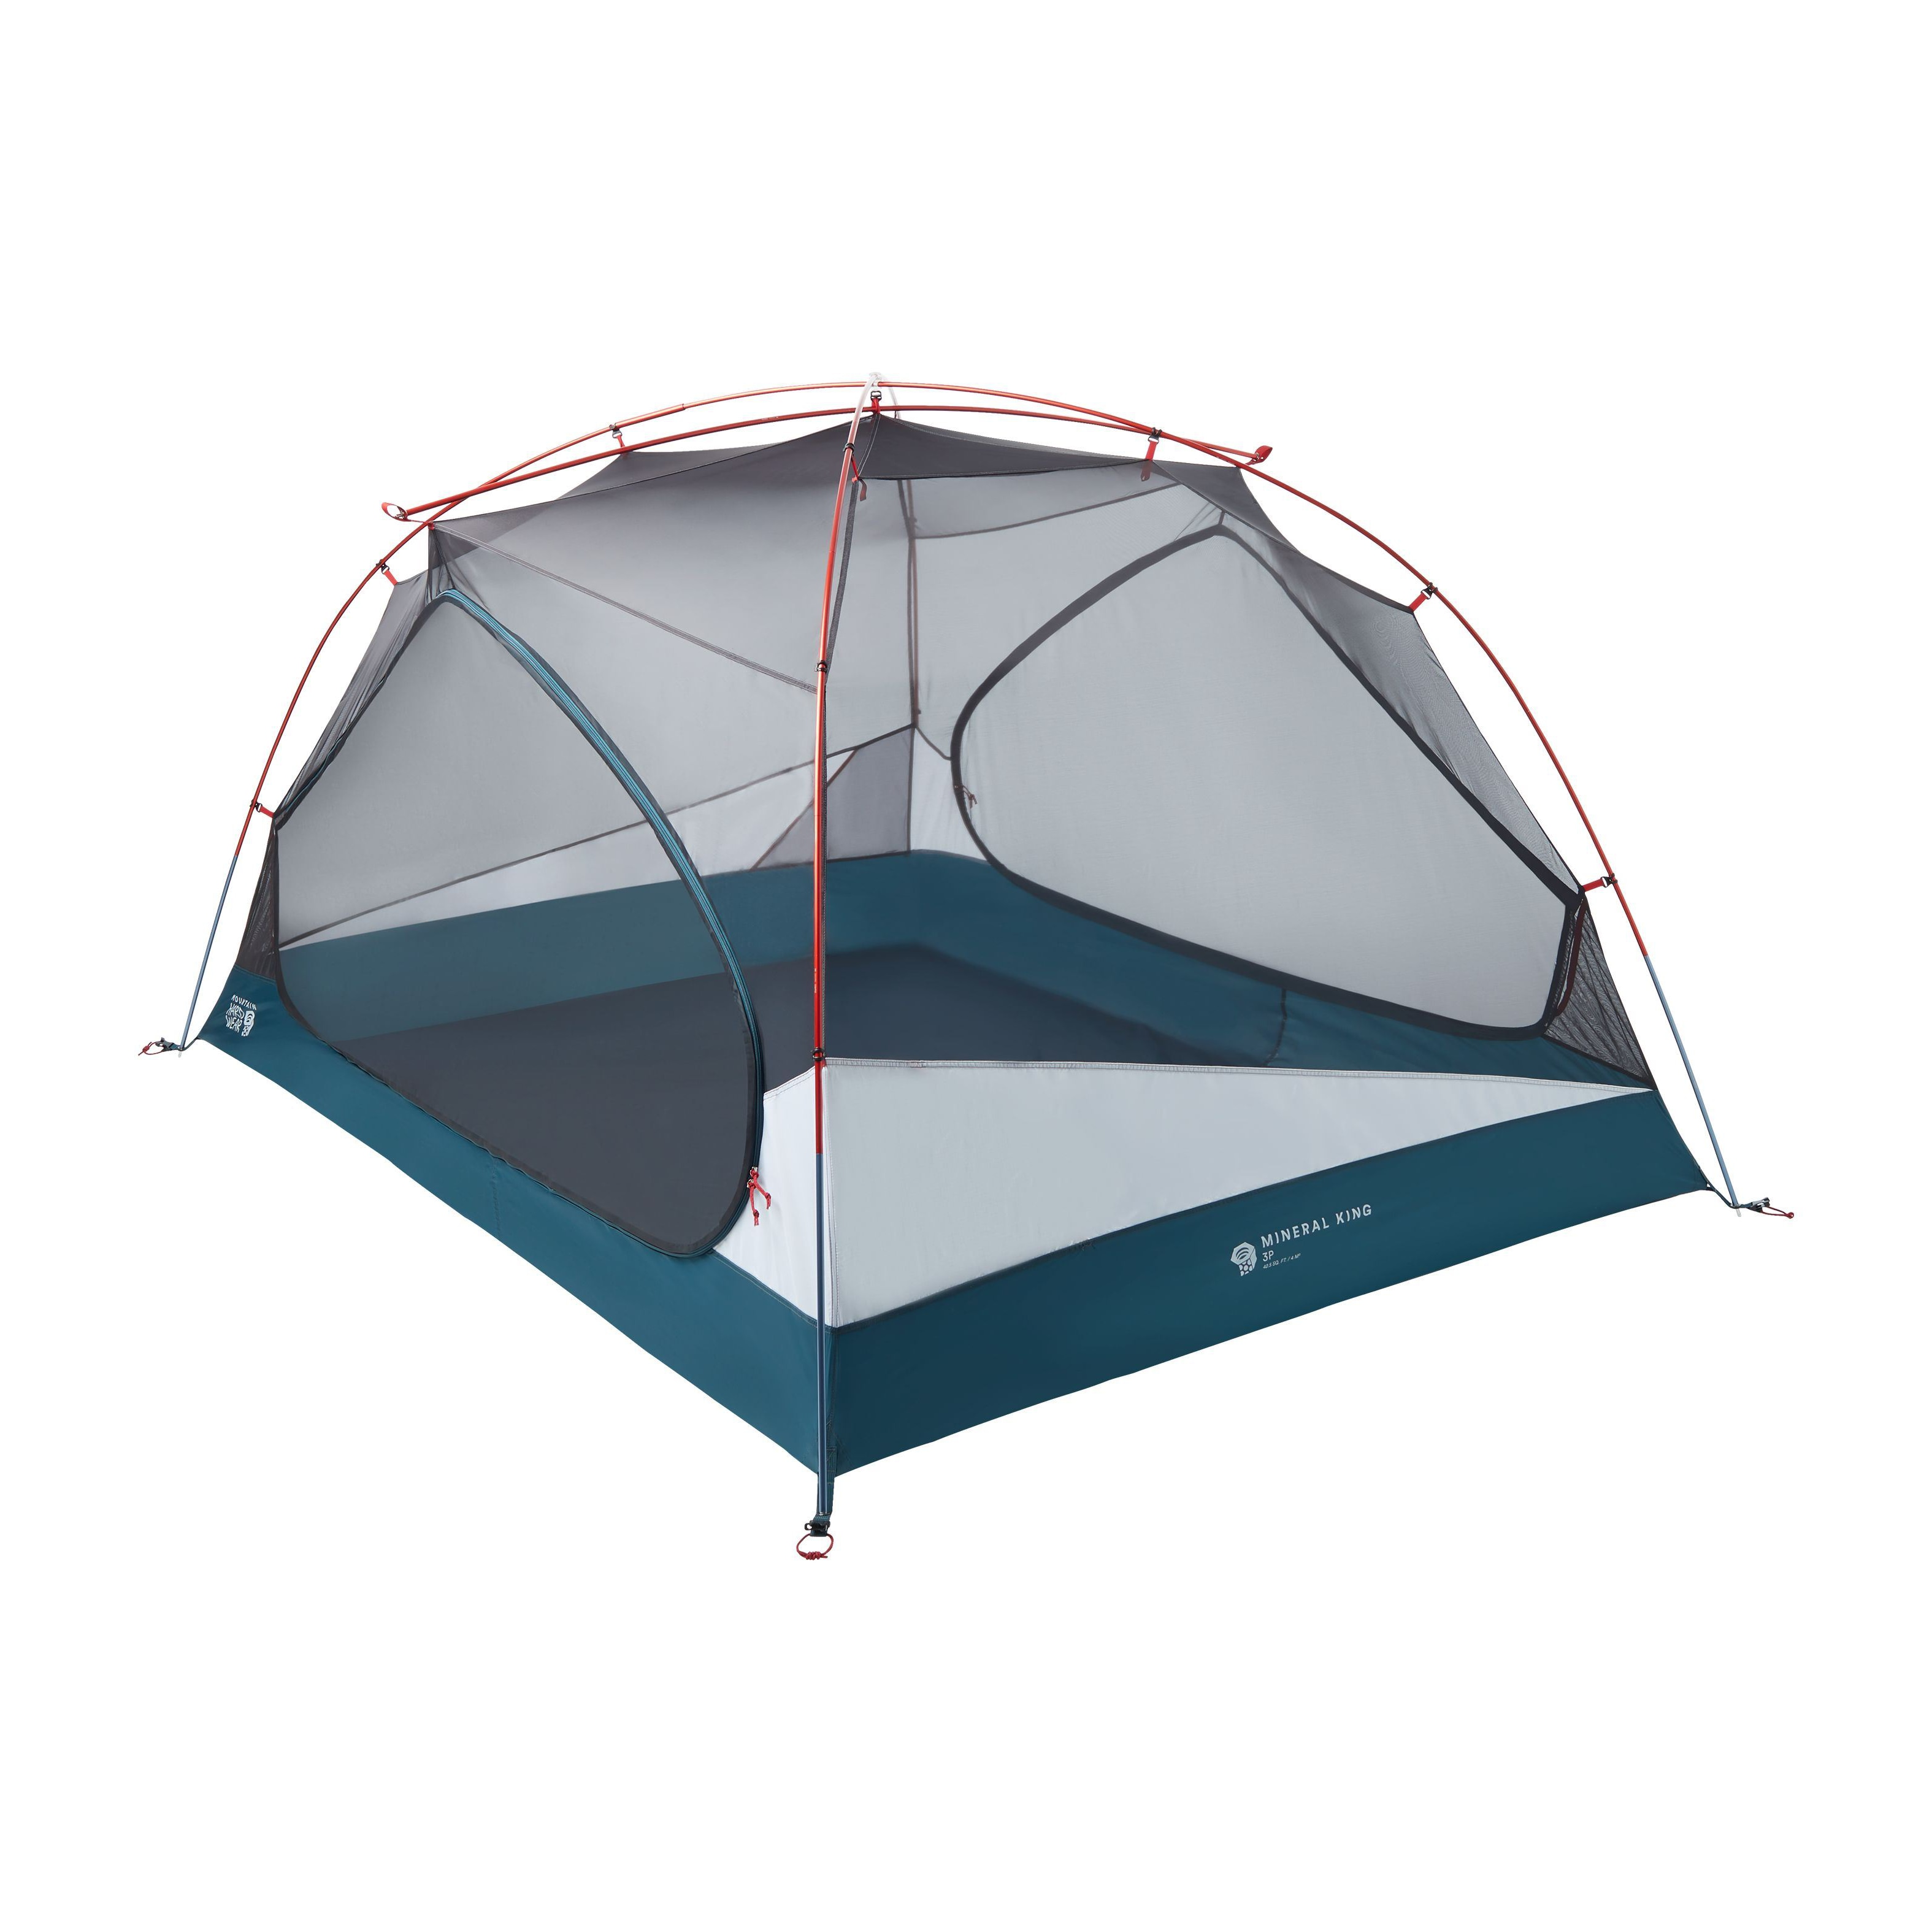 MINERAL KING 3 TENT - GREY ICE